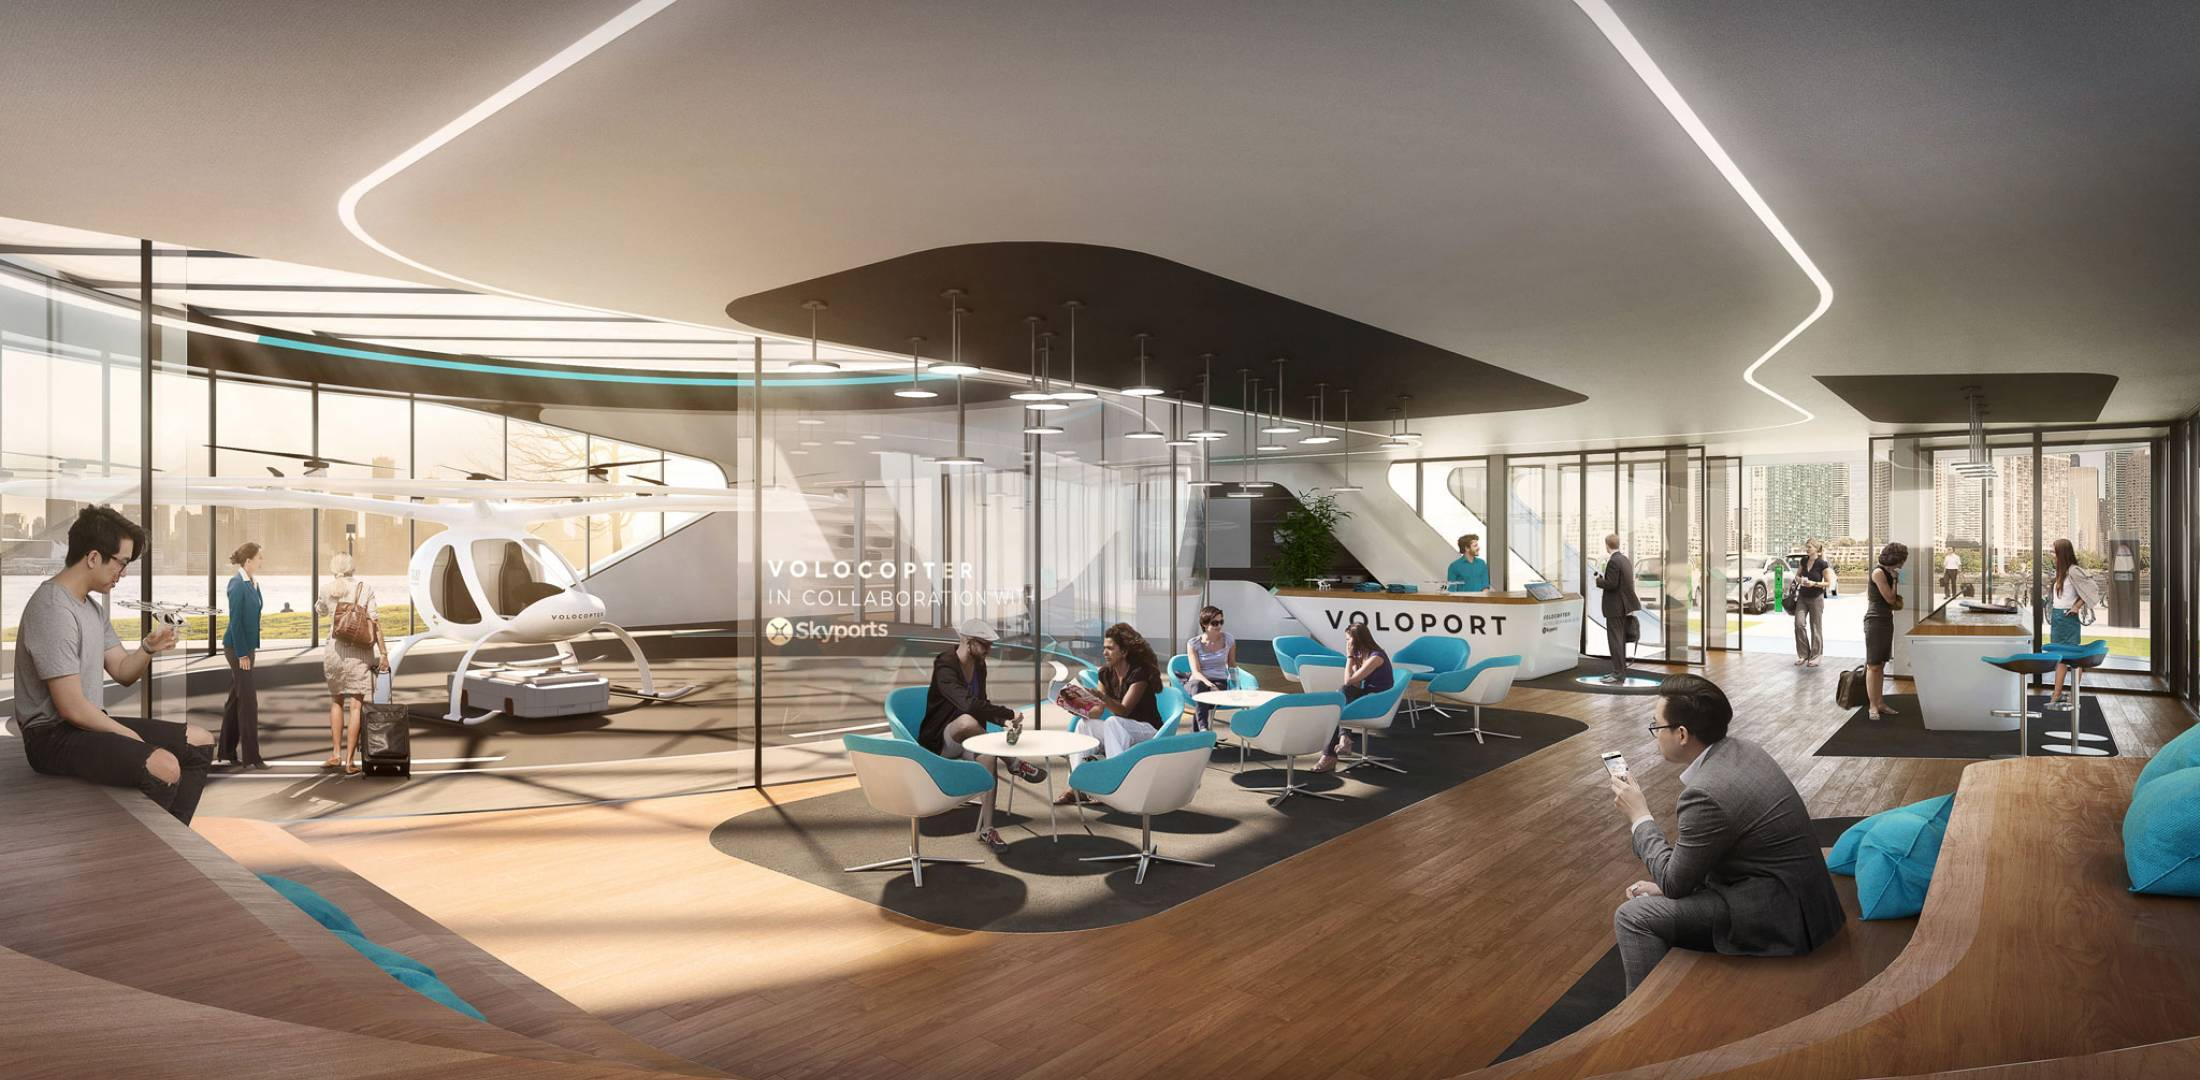 Skyports and Volocopter Building 'Volo-Port' in Singapore